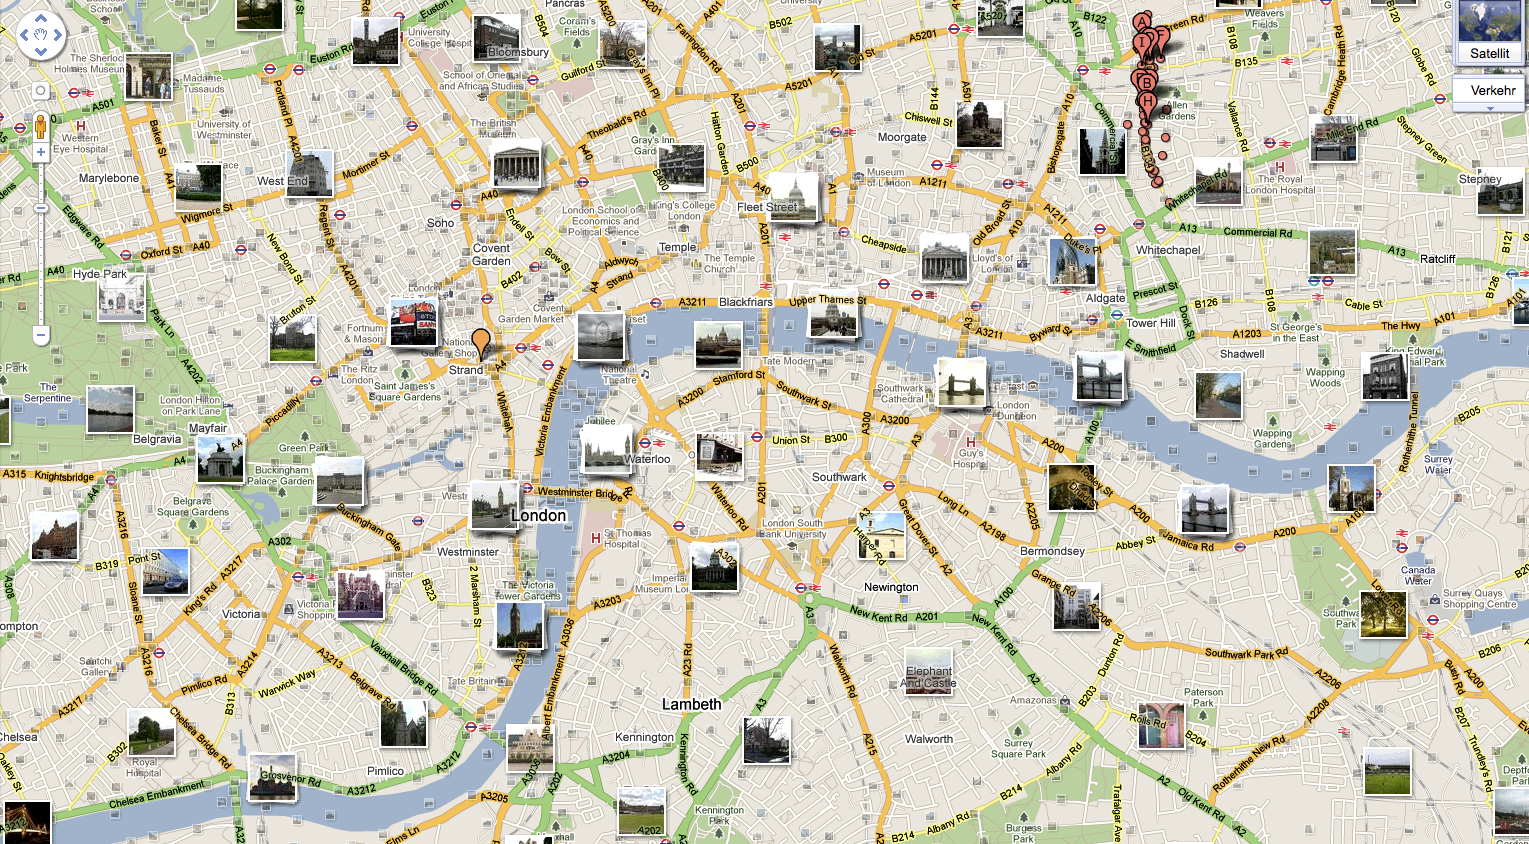 London tourist map – Map Of Central London For Tourists